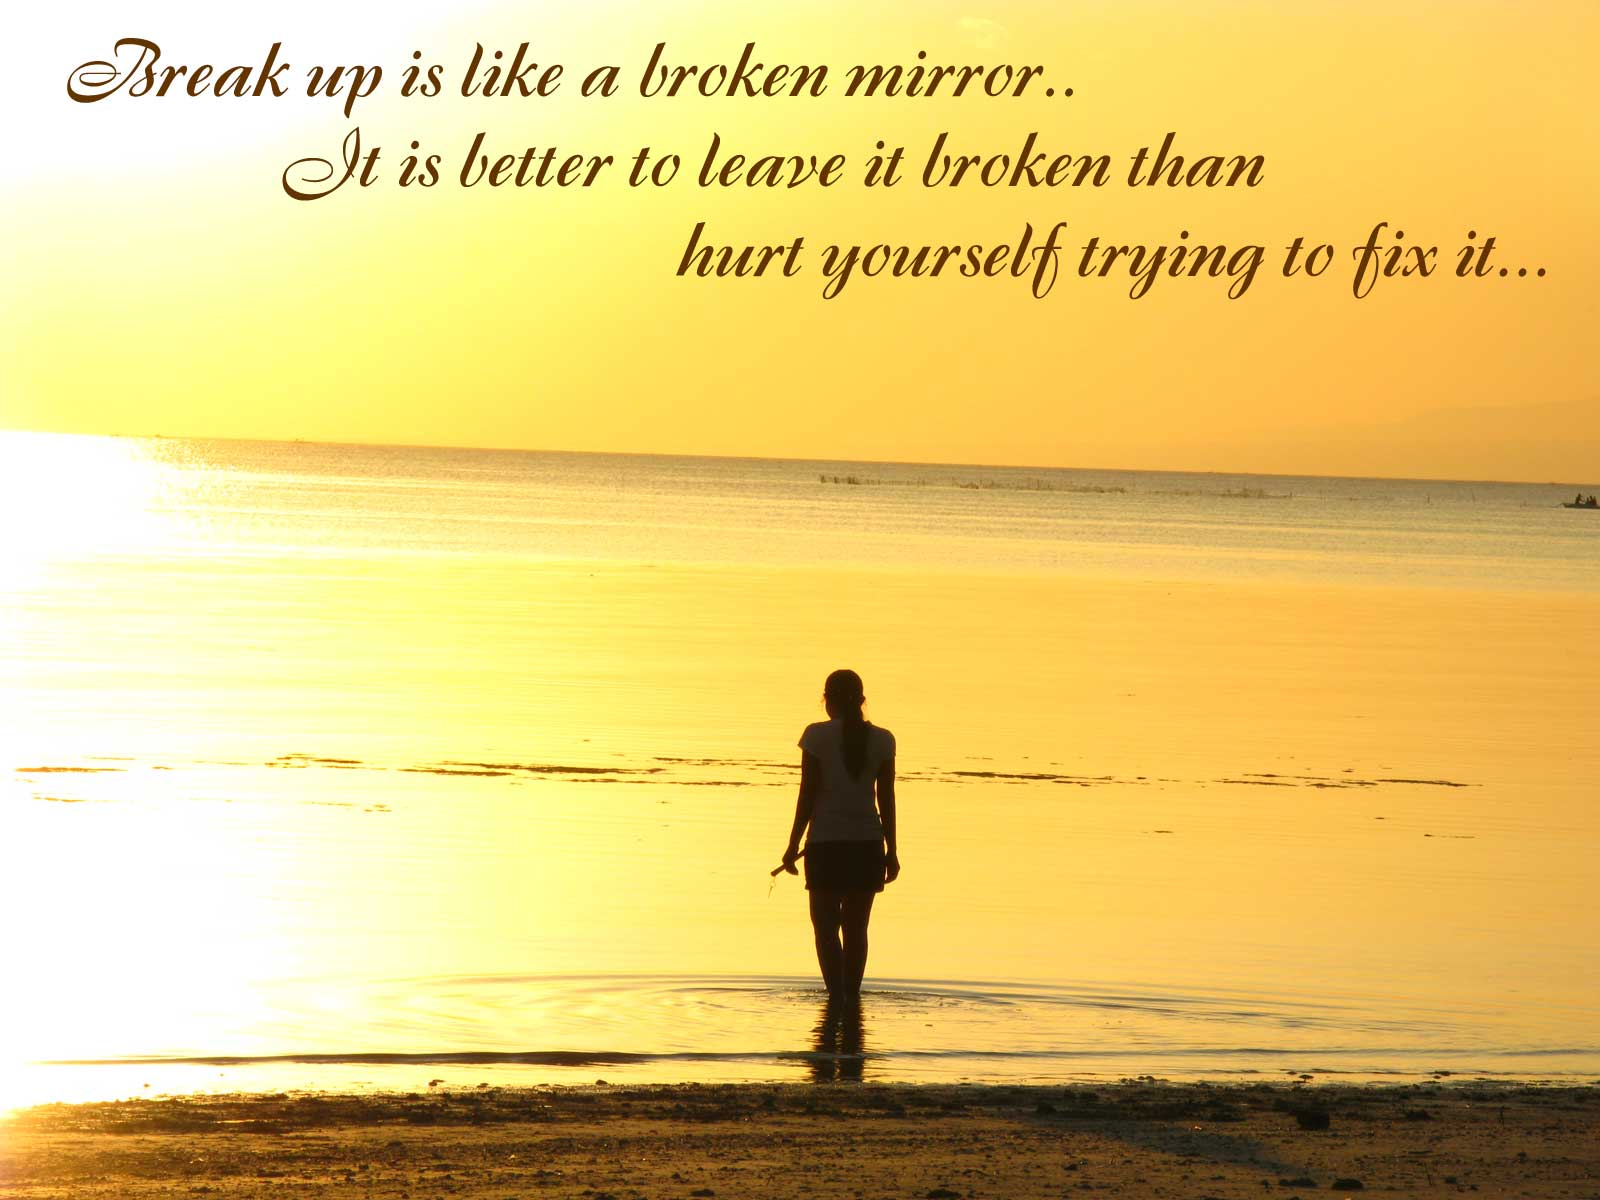 Break Up Love Quotes Break Up Is Like A Broken Mirror » Love Quotes » Khyati Kothari Diy